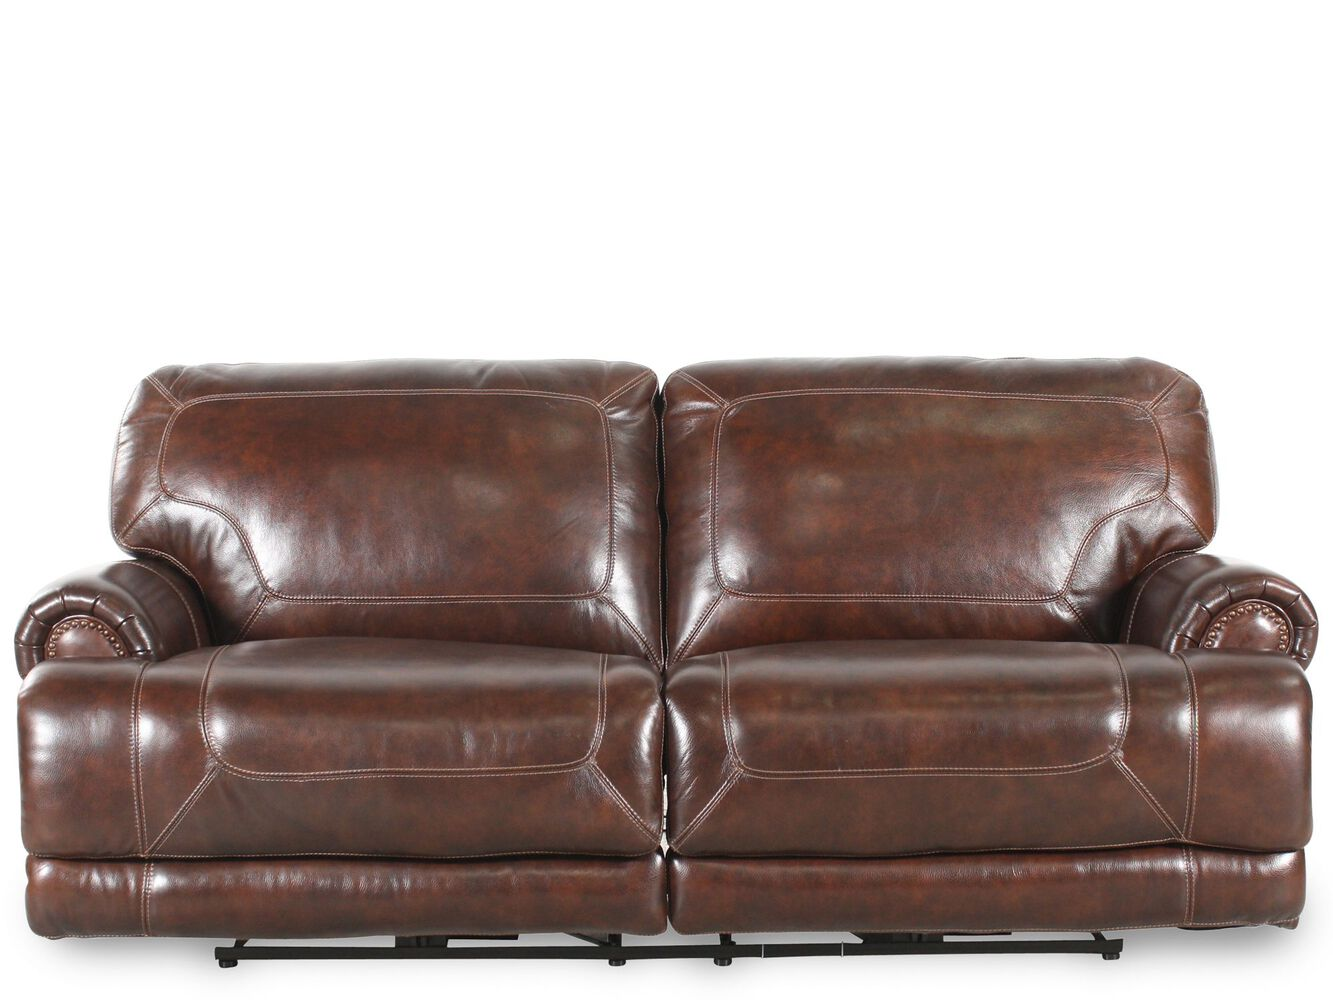 leather reclining 86 sofa in brown mathis brothers. Black Bedroom Furniture Sets. Home Design Ideas